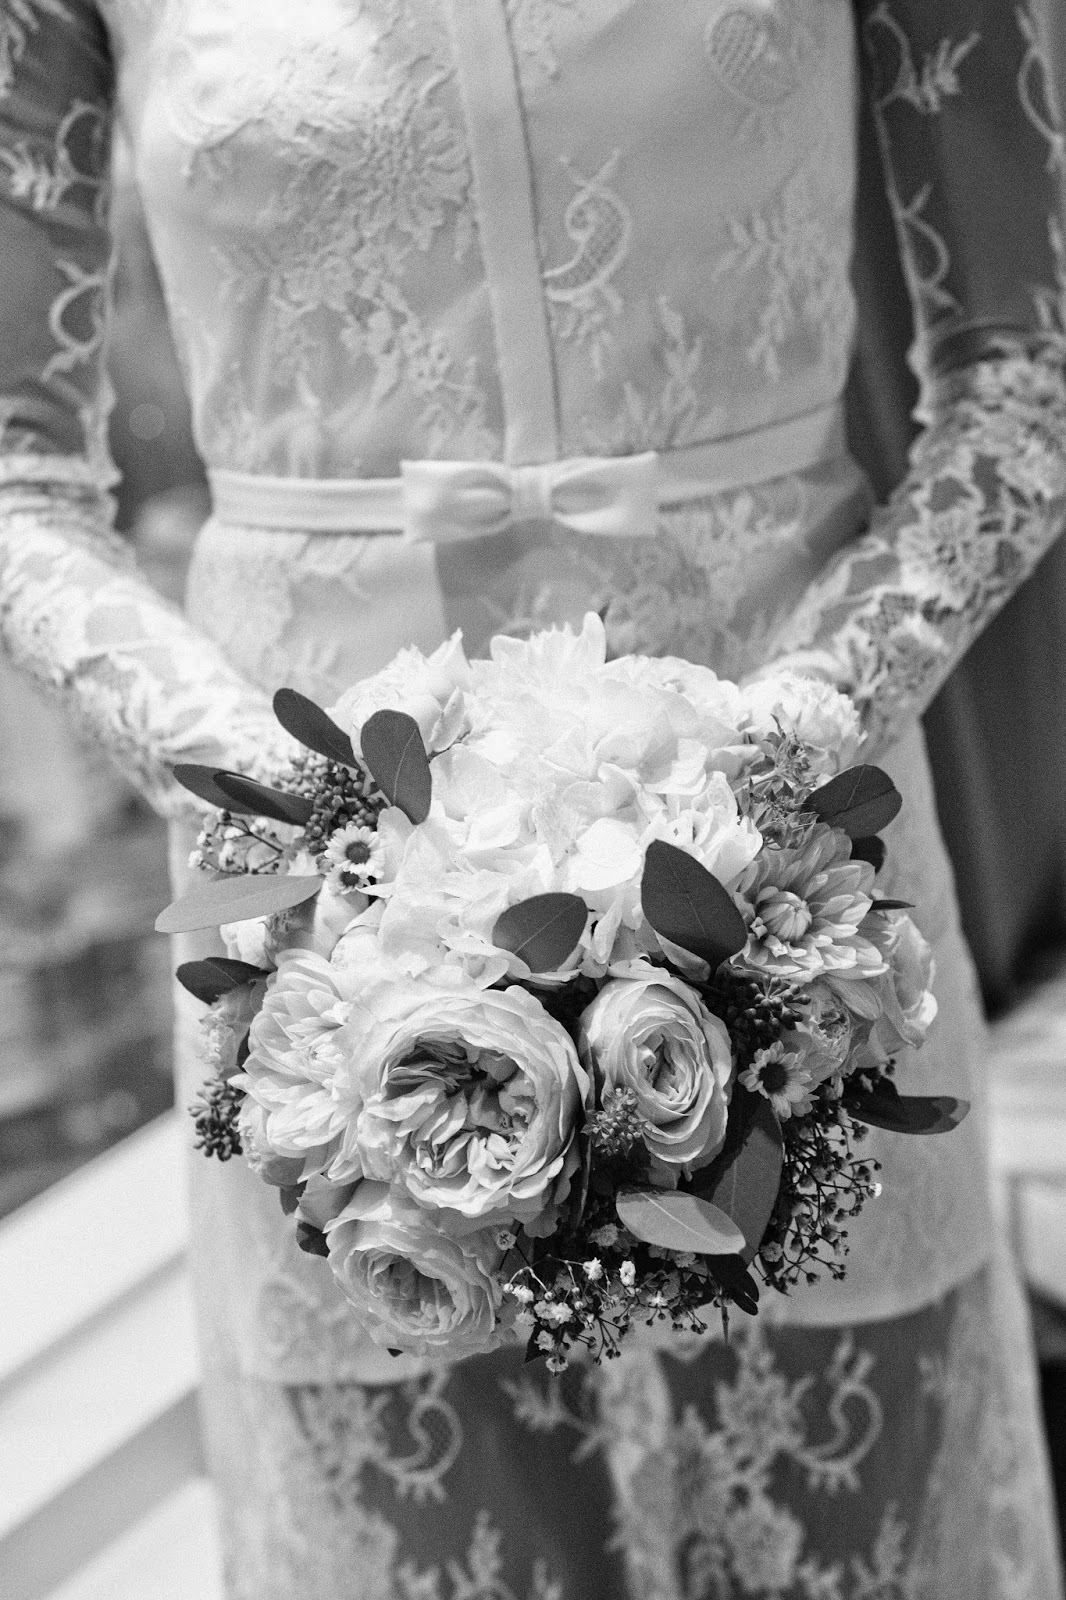 lace-wedding-dress-bride-flower-bouquet